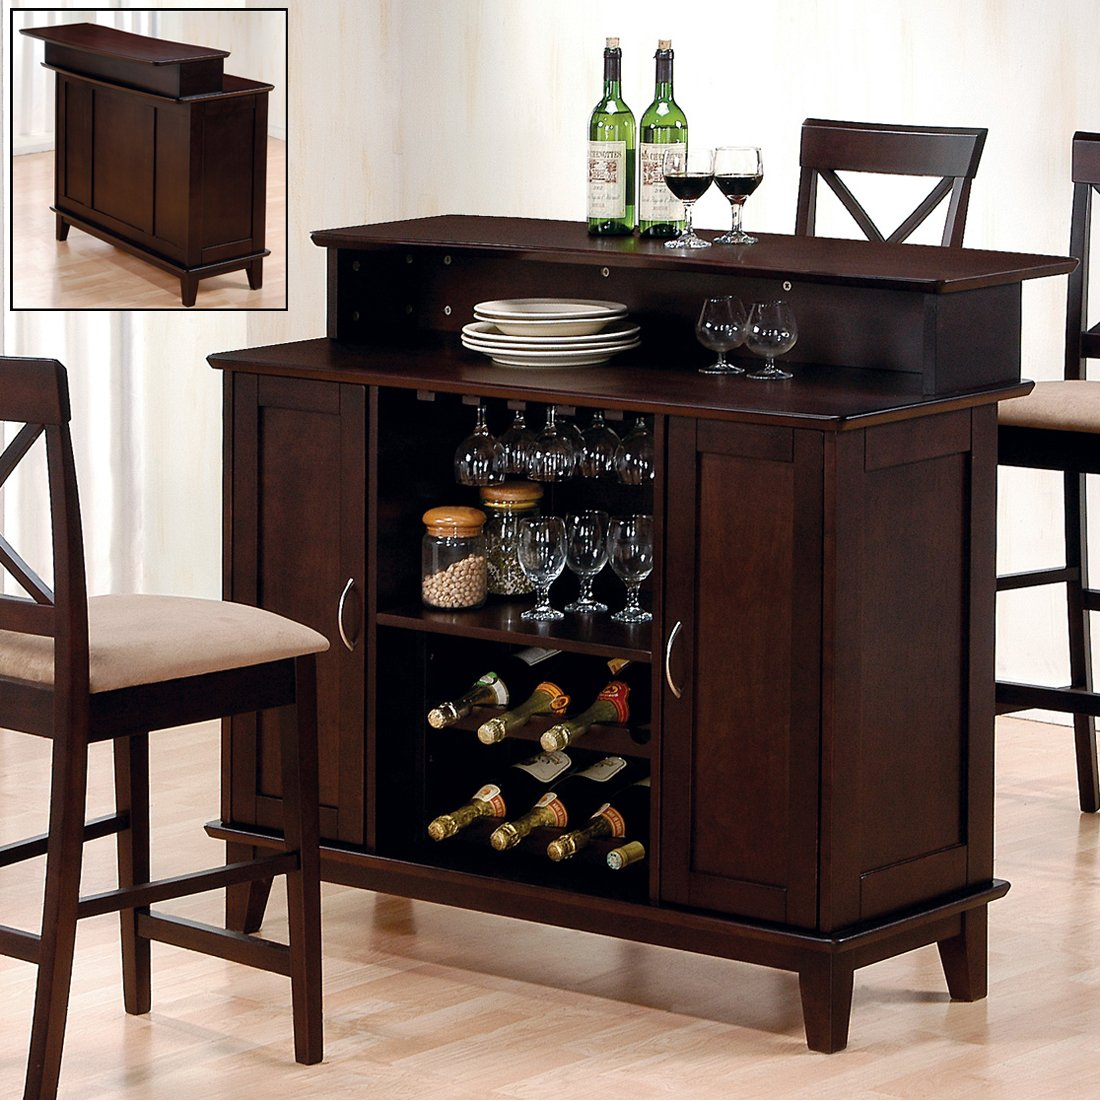 Small bar furniture for apartment best decor things for Small apartment chairs